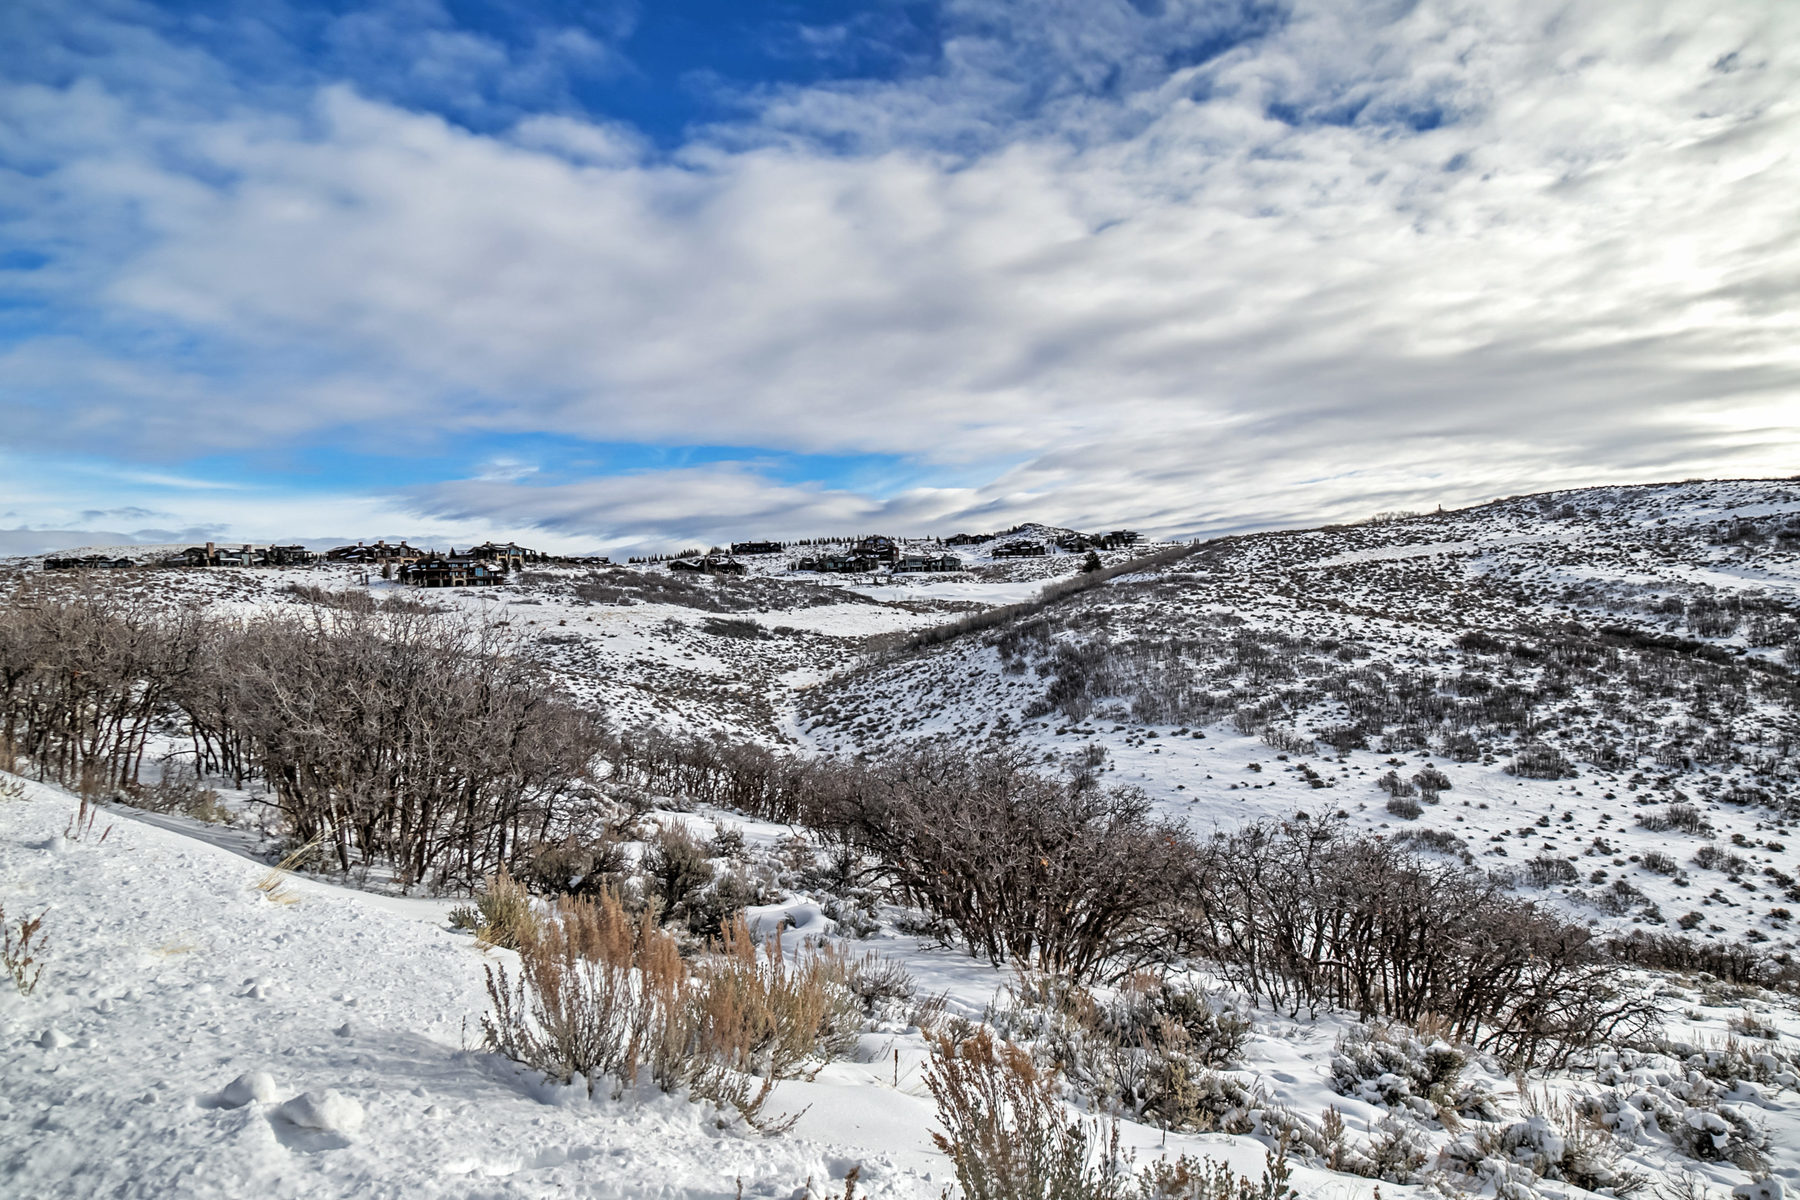 Terreno por un Venta en Amazing Promontory Home Site For Those Who Dream In Color 8556 N Promontory Rock Rd Lot 13 Park City, Utah, 84098 Estados Unidos